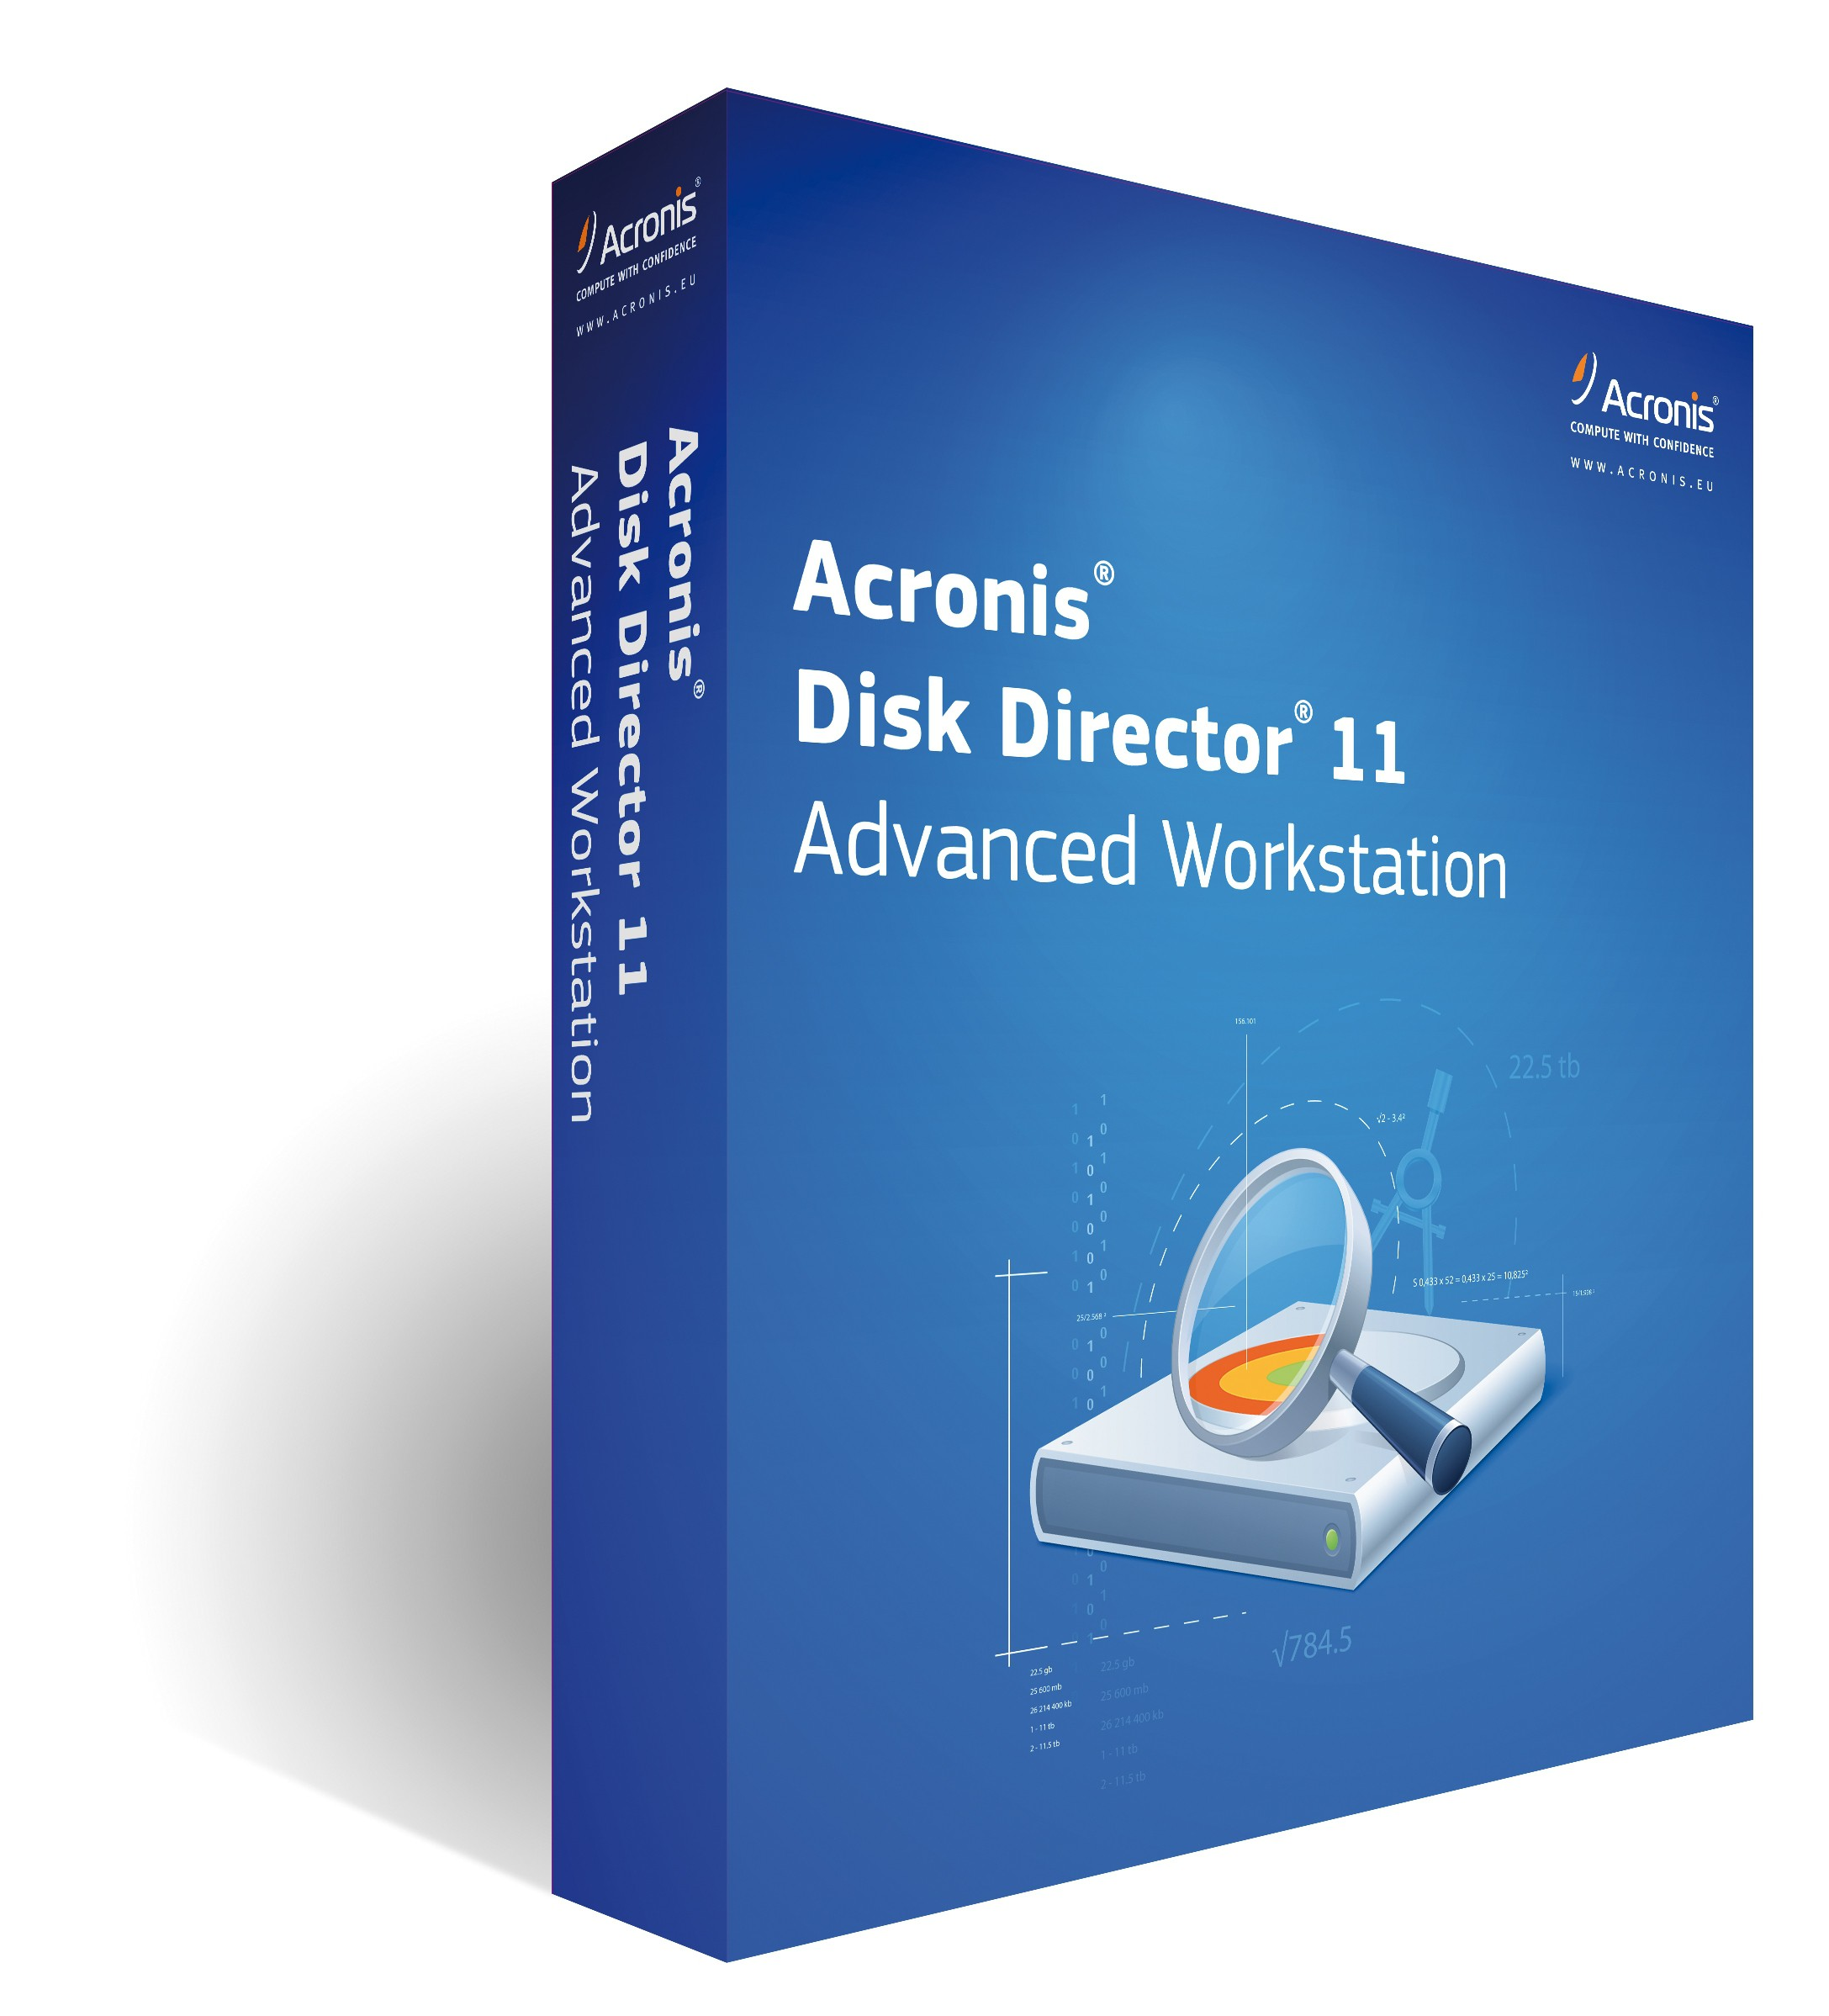 Acronis Disk Director 11